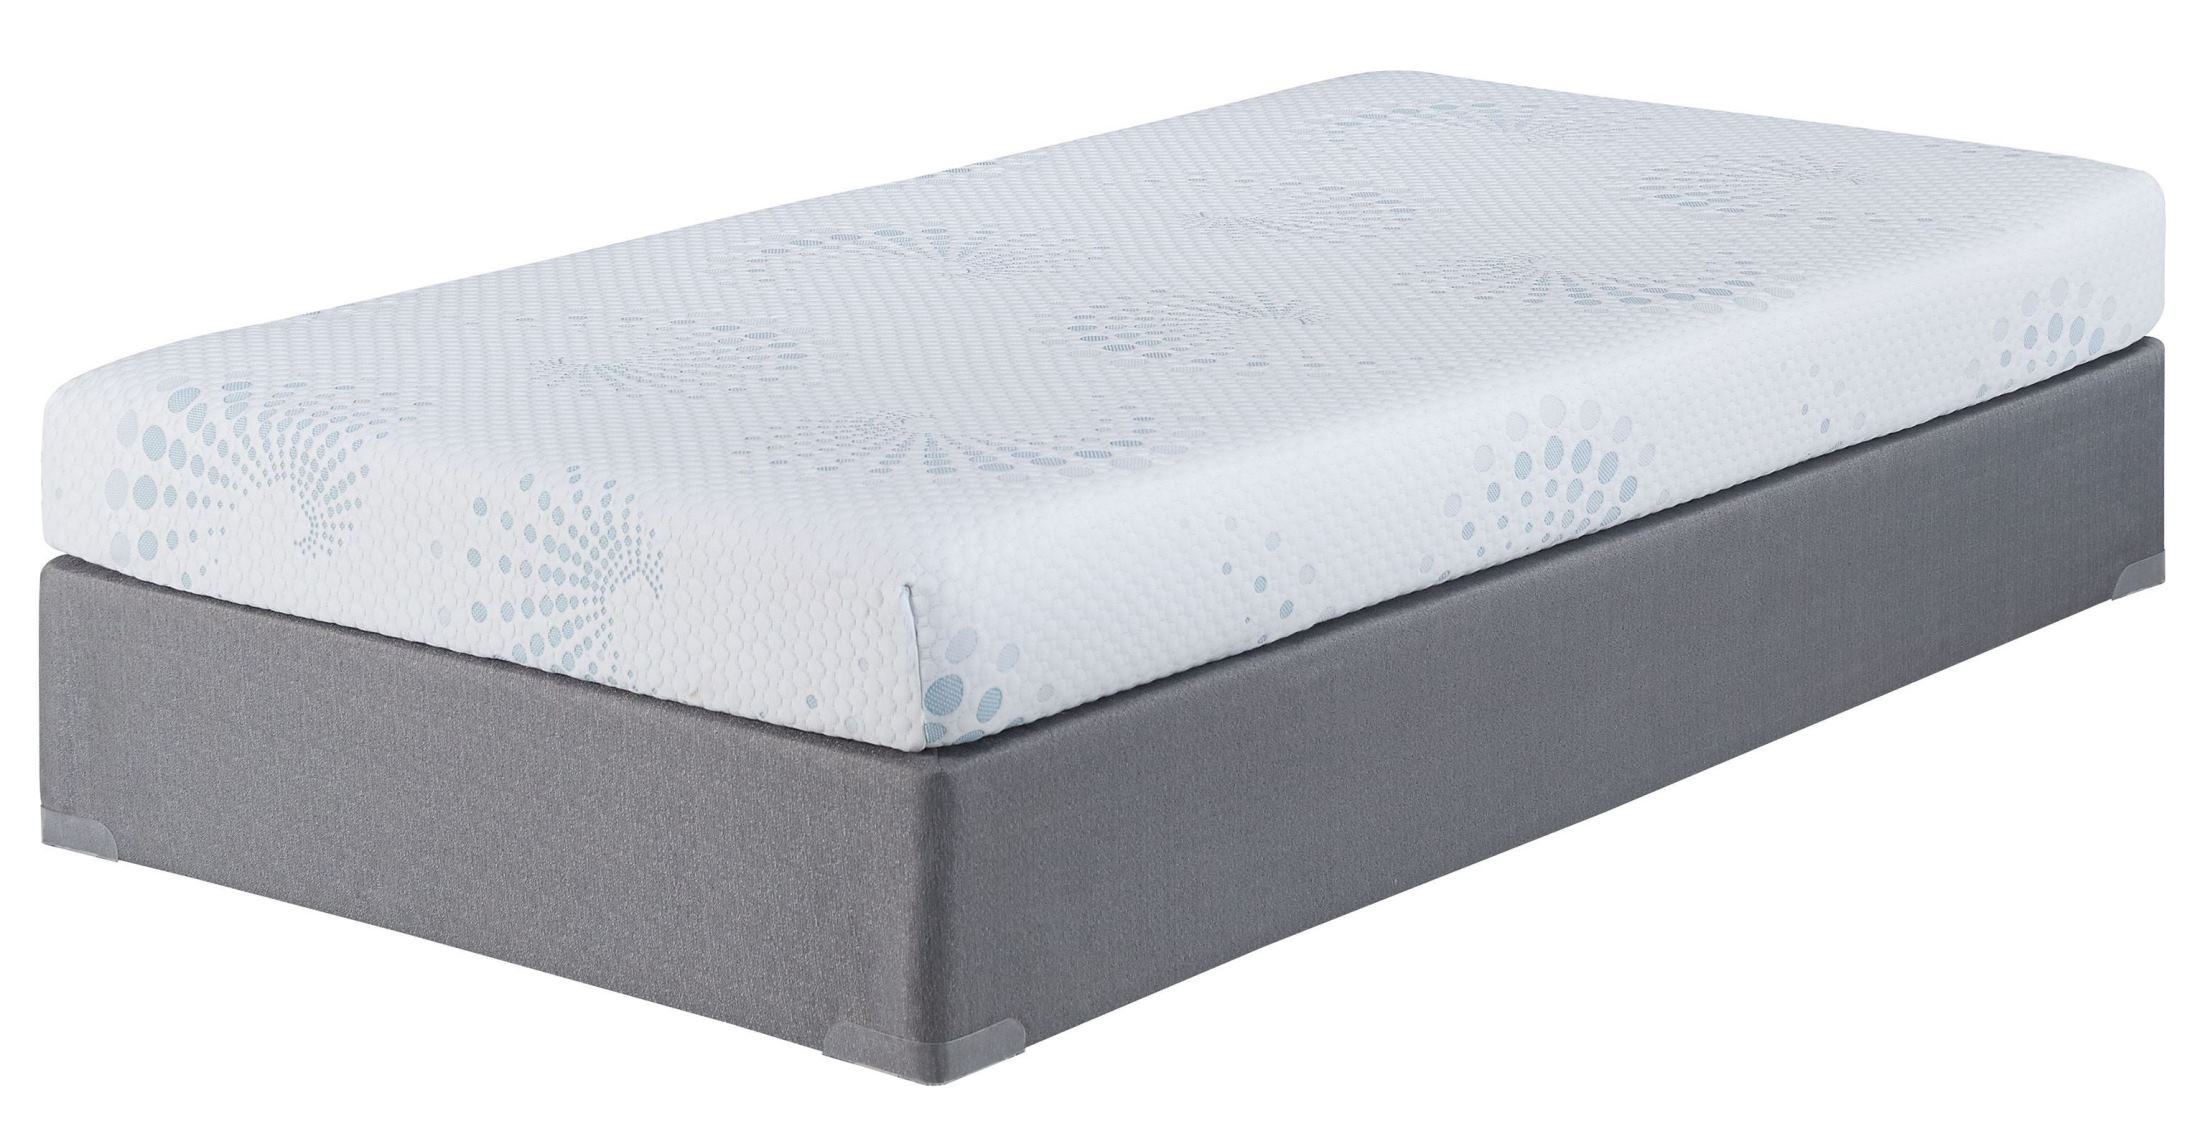 Twin Foam Mattress Kids Bedding Full Memory Foam Mattress from Ashley ...